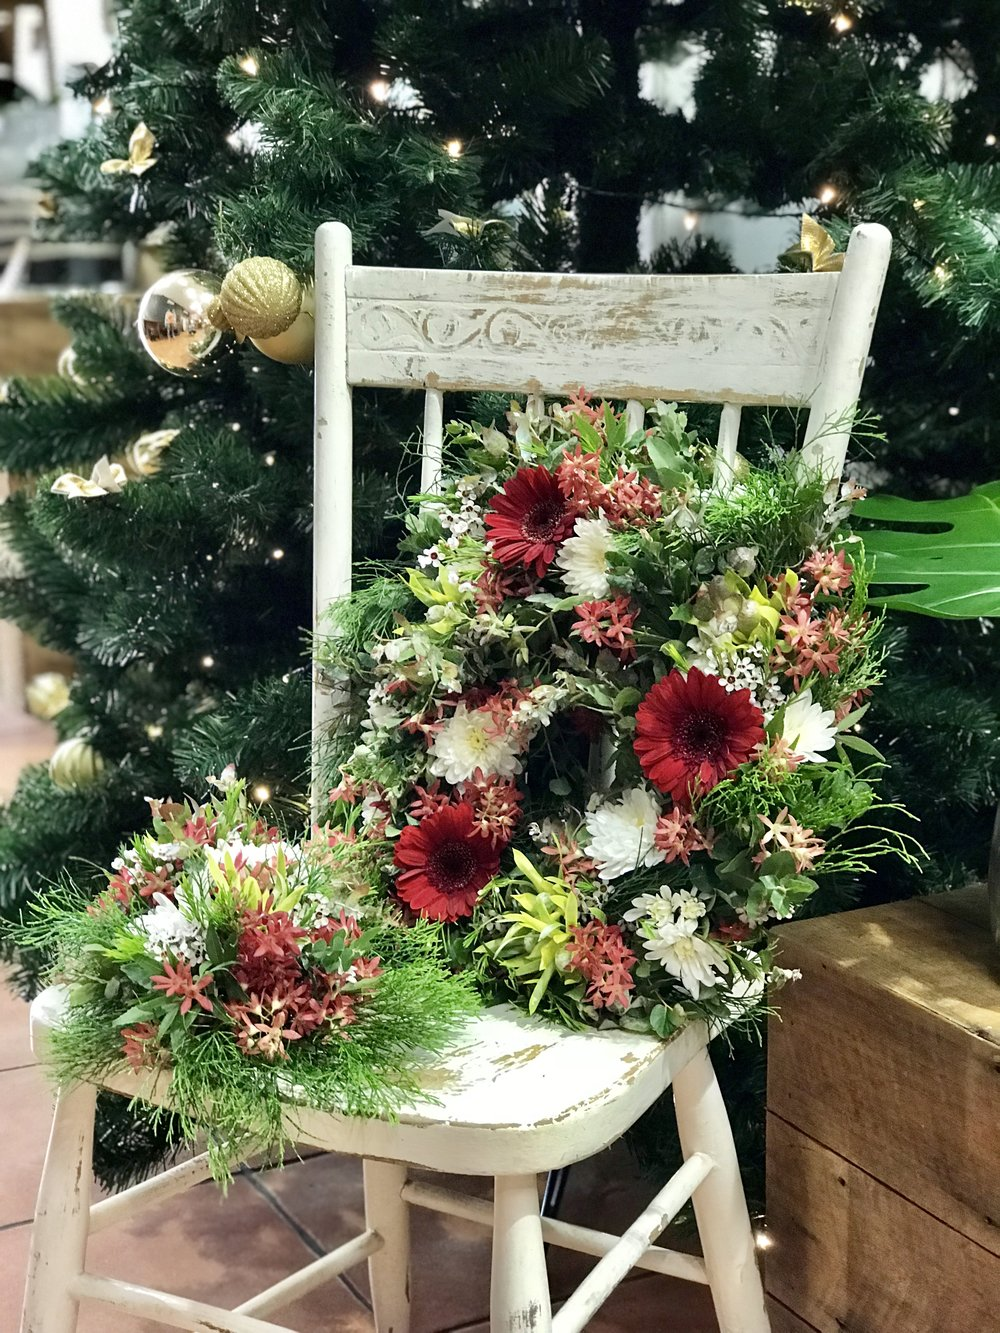 My creations from the Northside Flower Market Christmas wreath and table centre piece workshop.